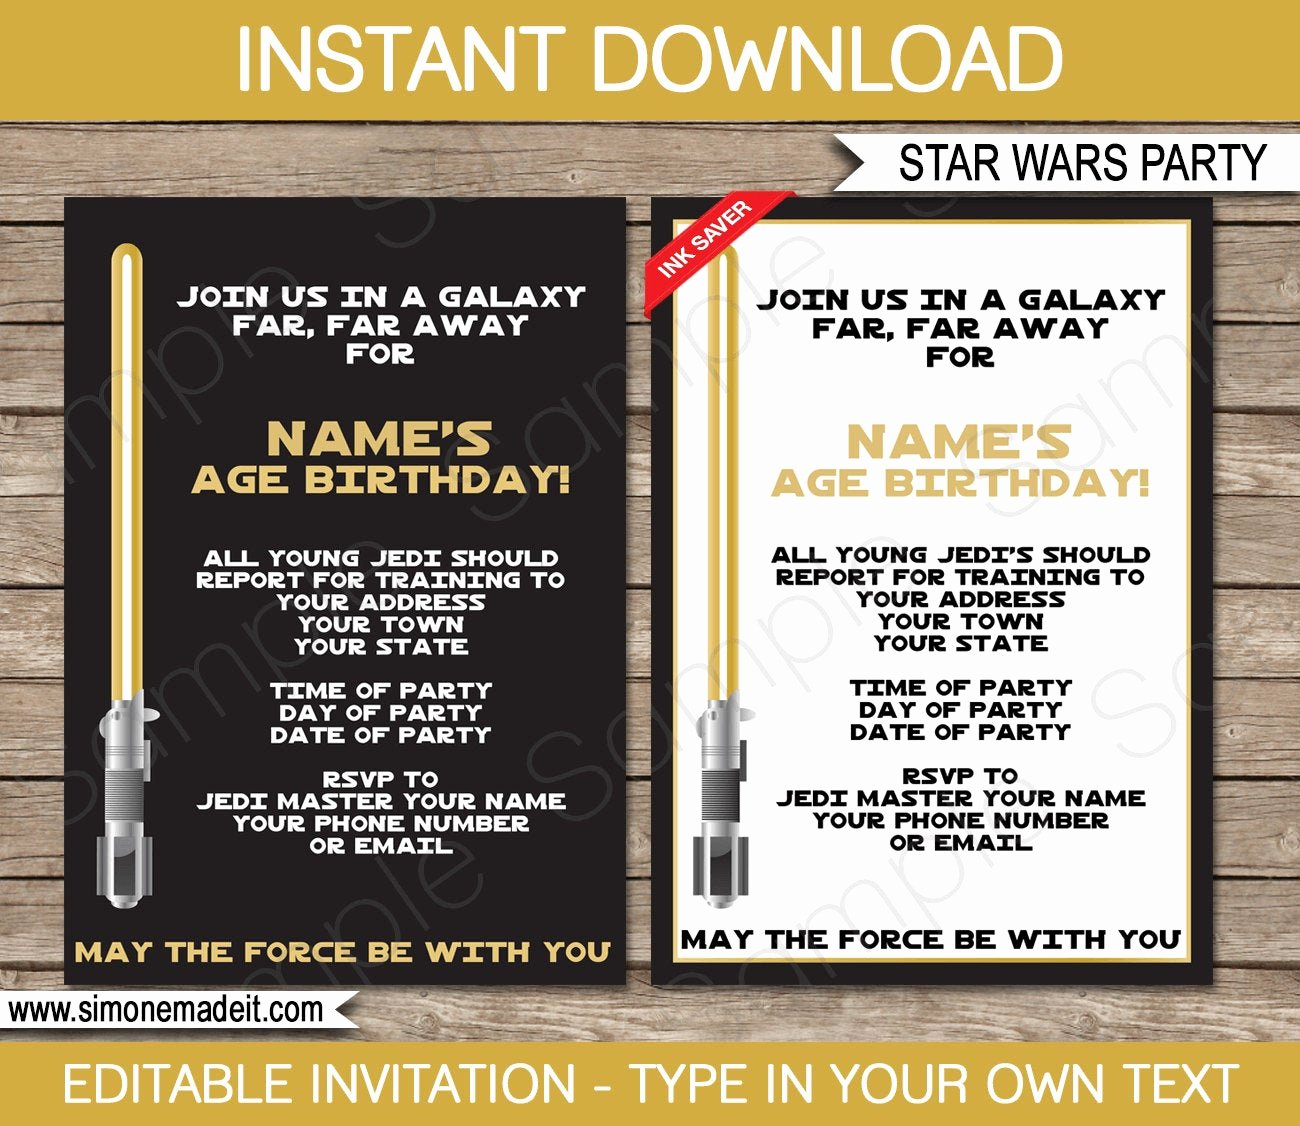 Star Wars Birthday Invitations Unique Star Wars Invitation Template Gold Birthday Party